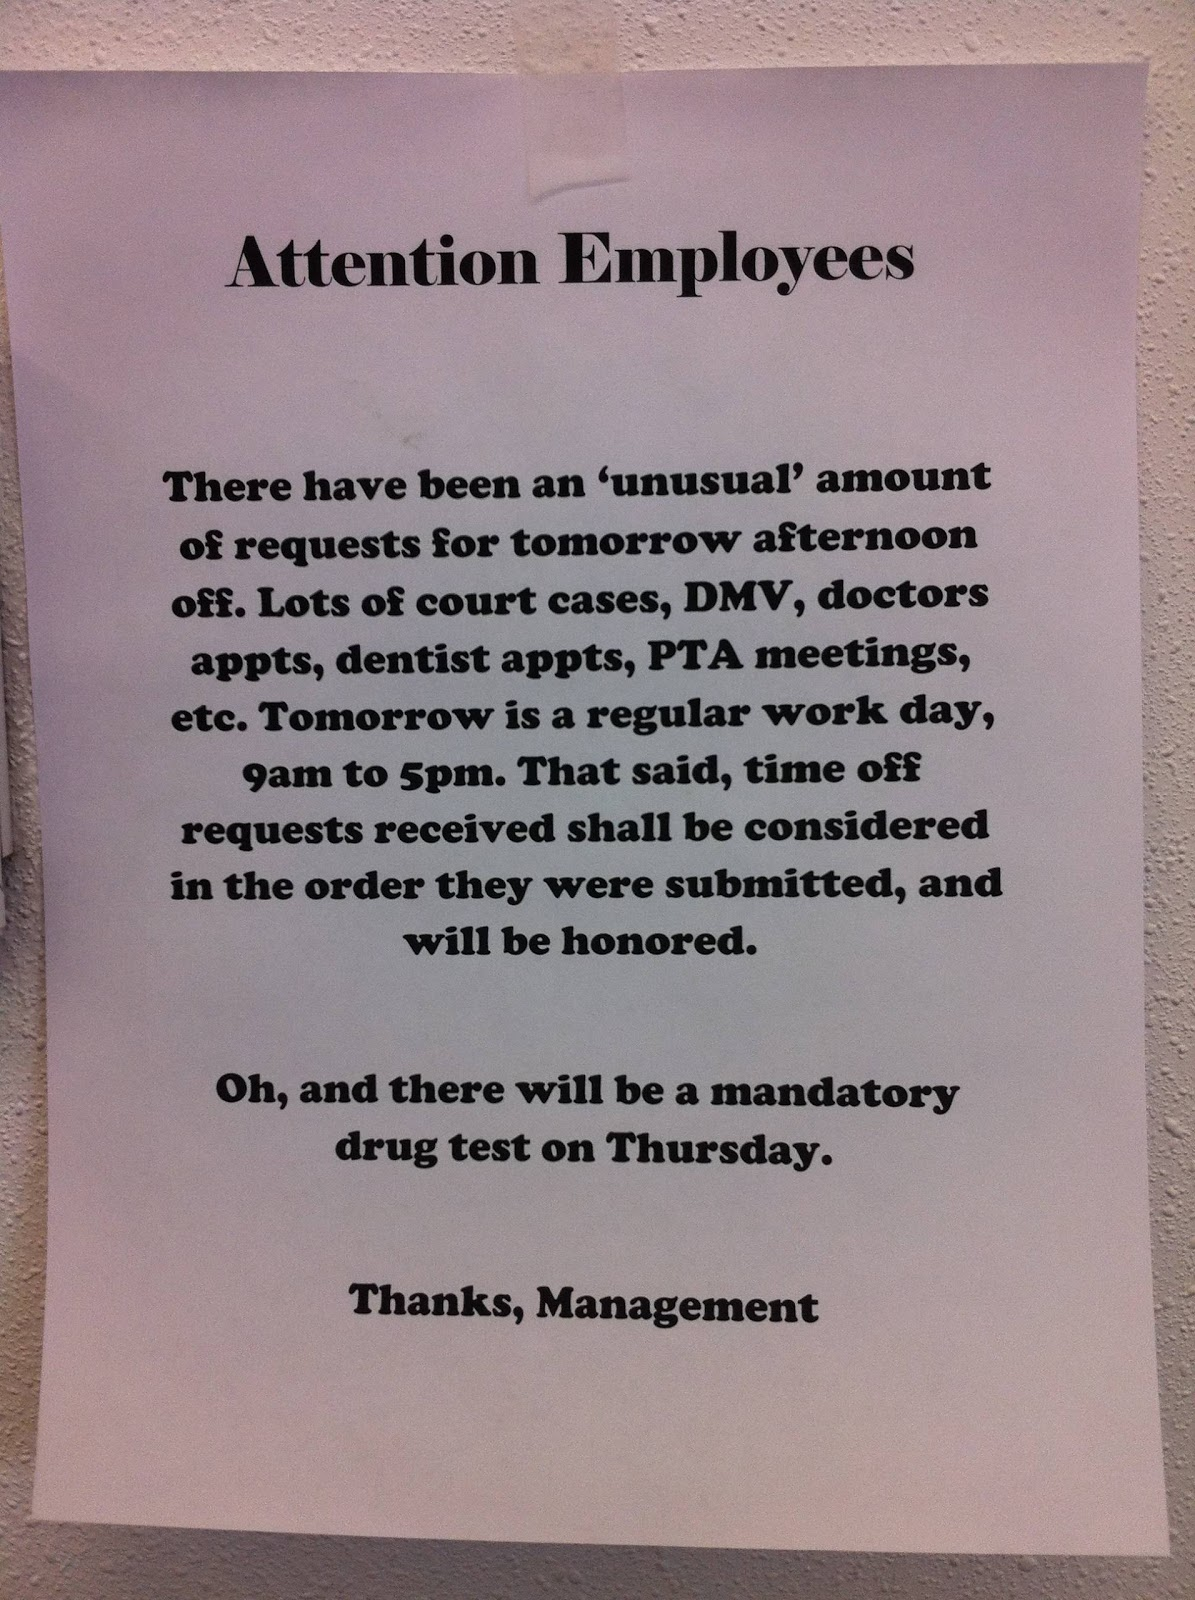 ... and Zeros: PAT POSTS A MEMO FOR EMPLOYEES IN ANTICIPATION OF 4/20